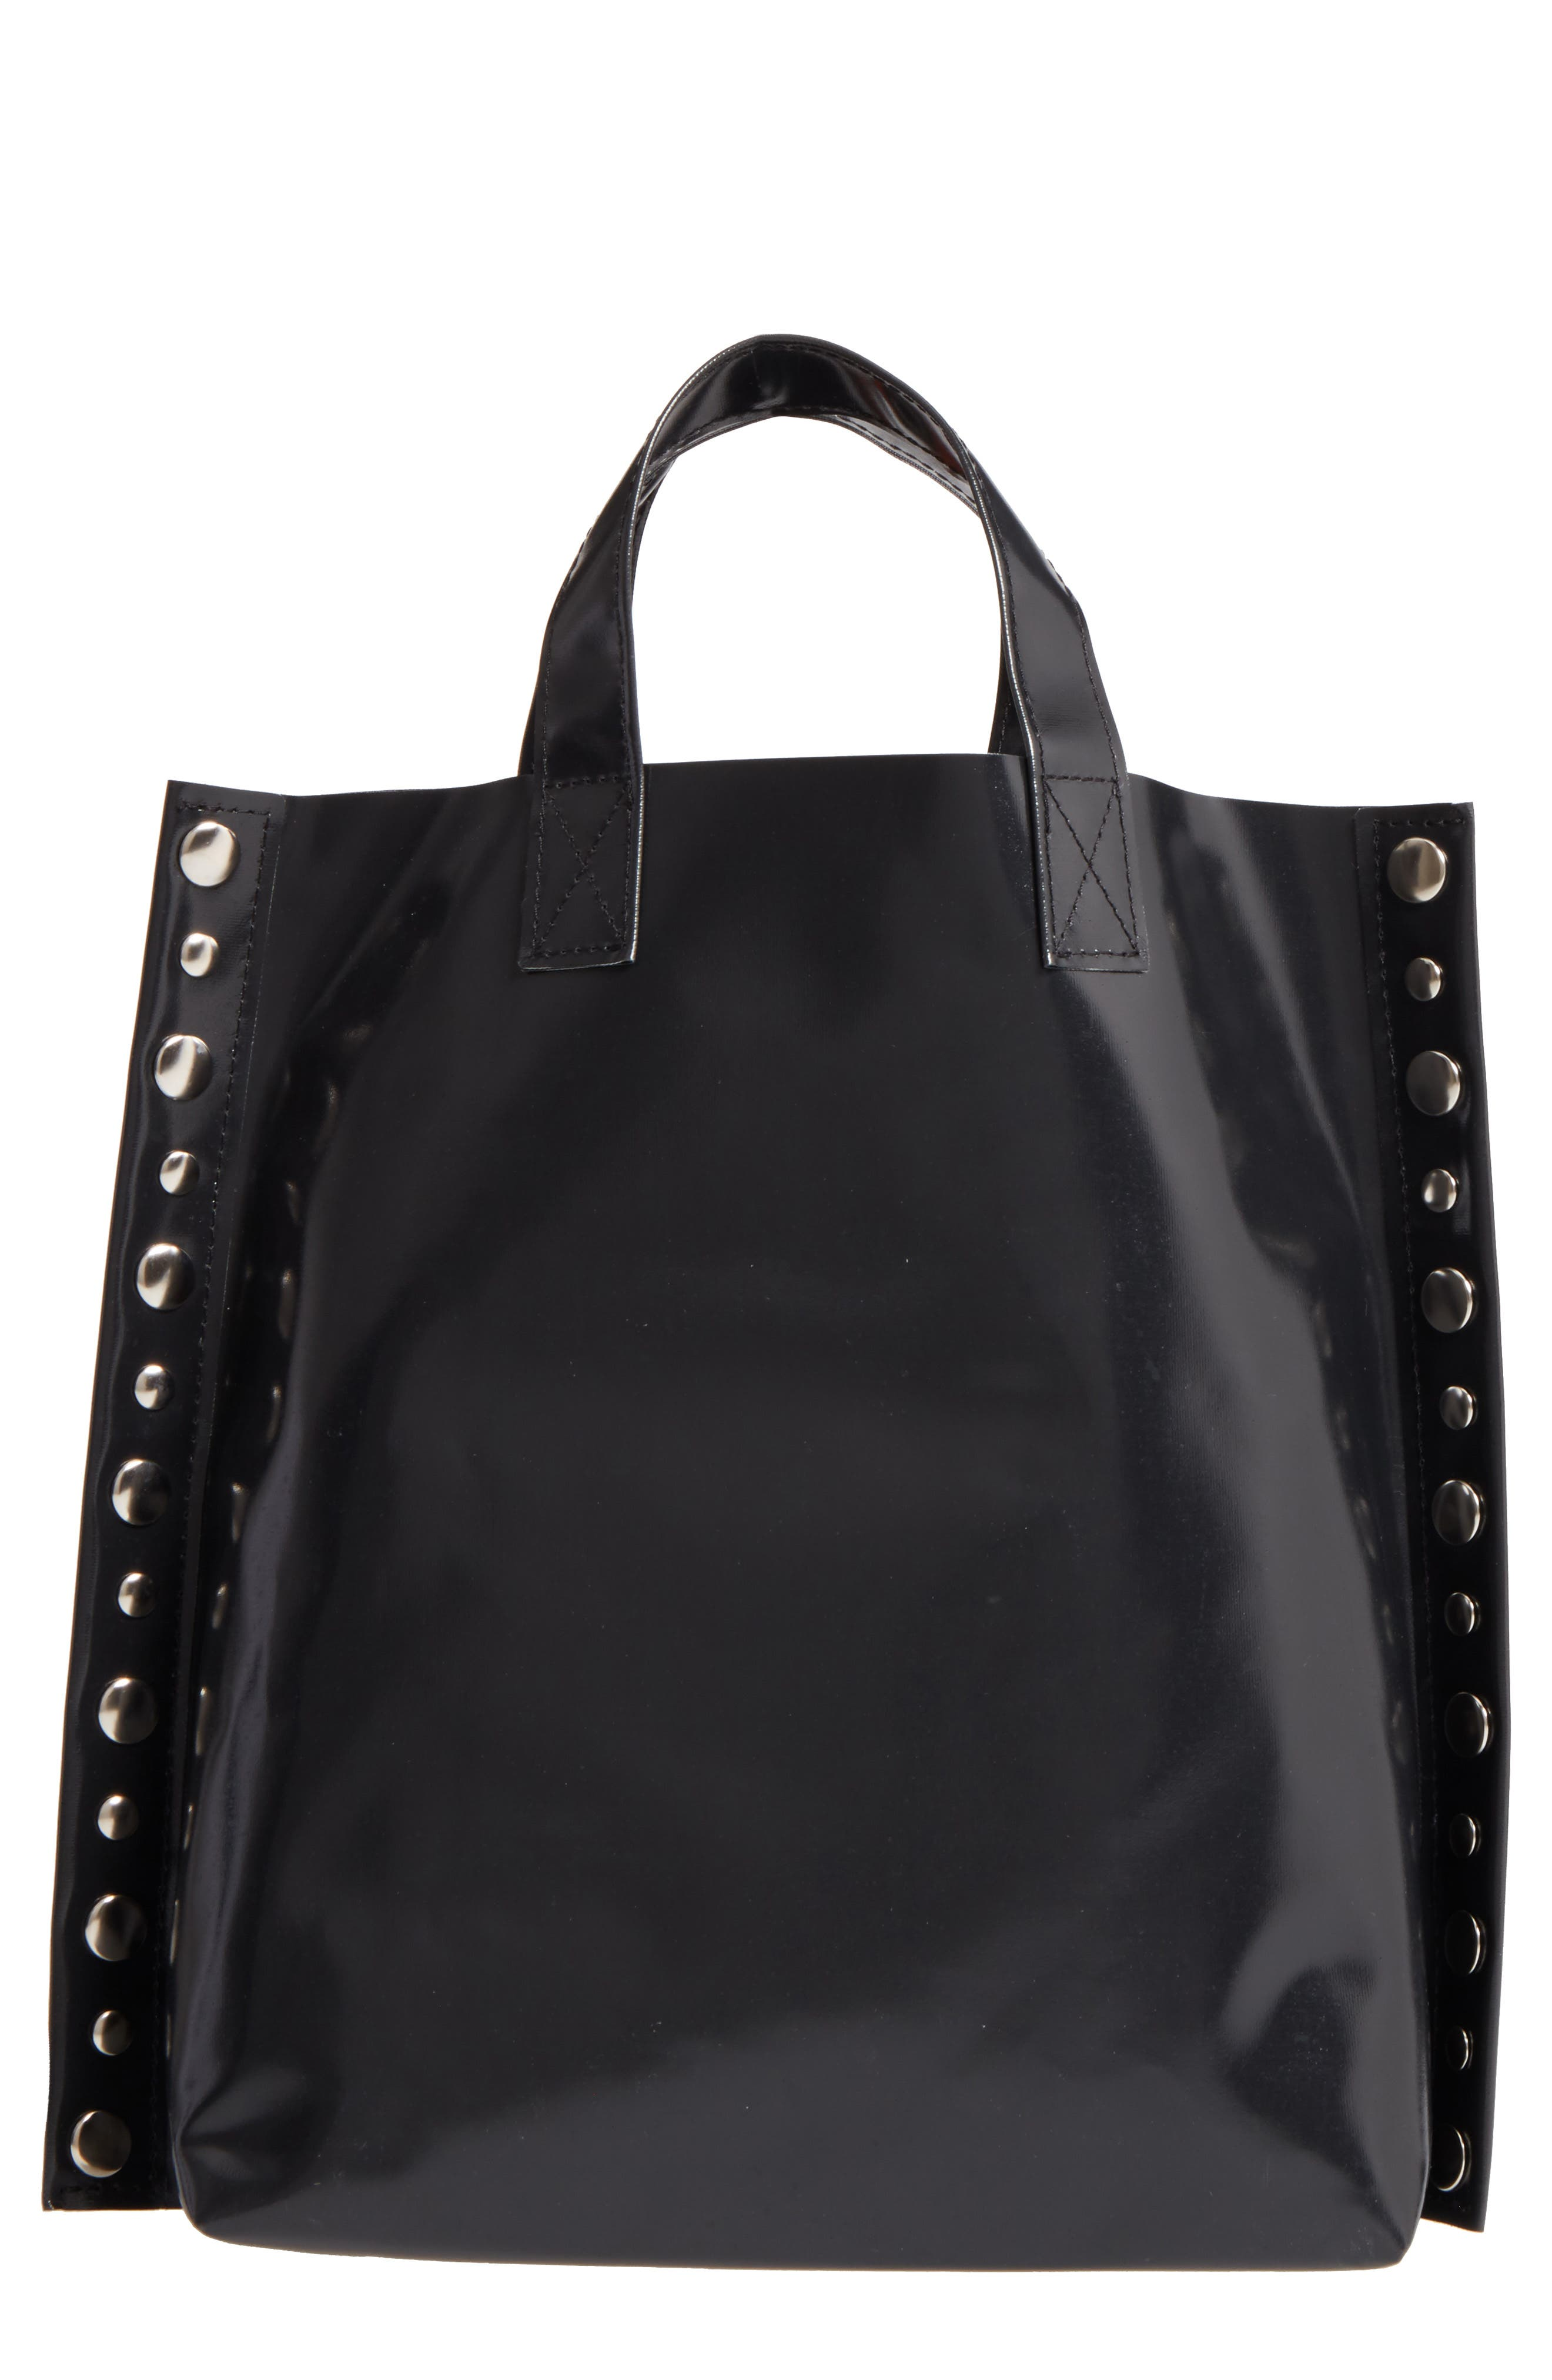 Alternate Image 1 Selected - Tricot Comme des Garçons Studded Faux Leather Tote